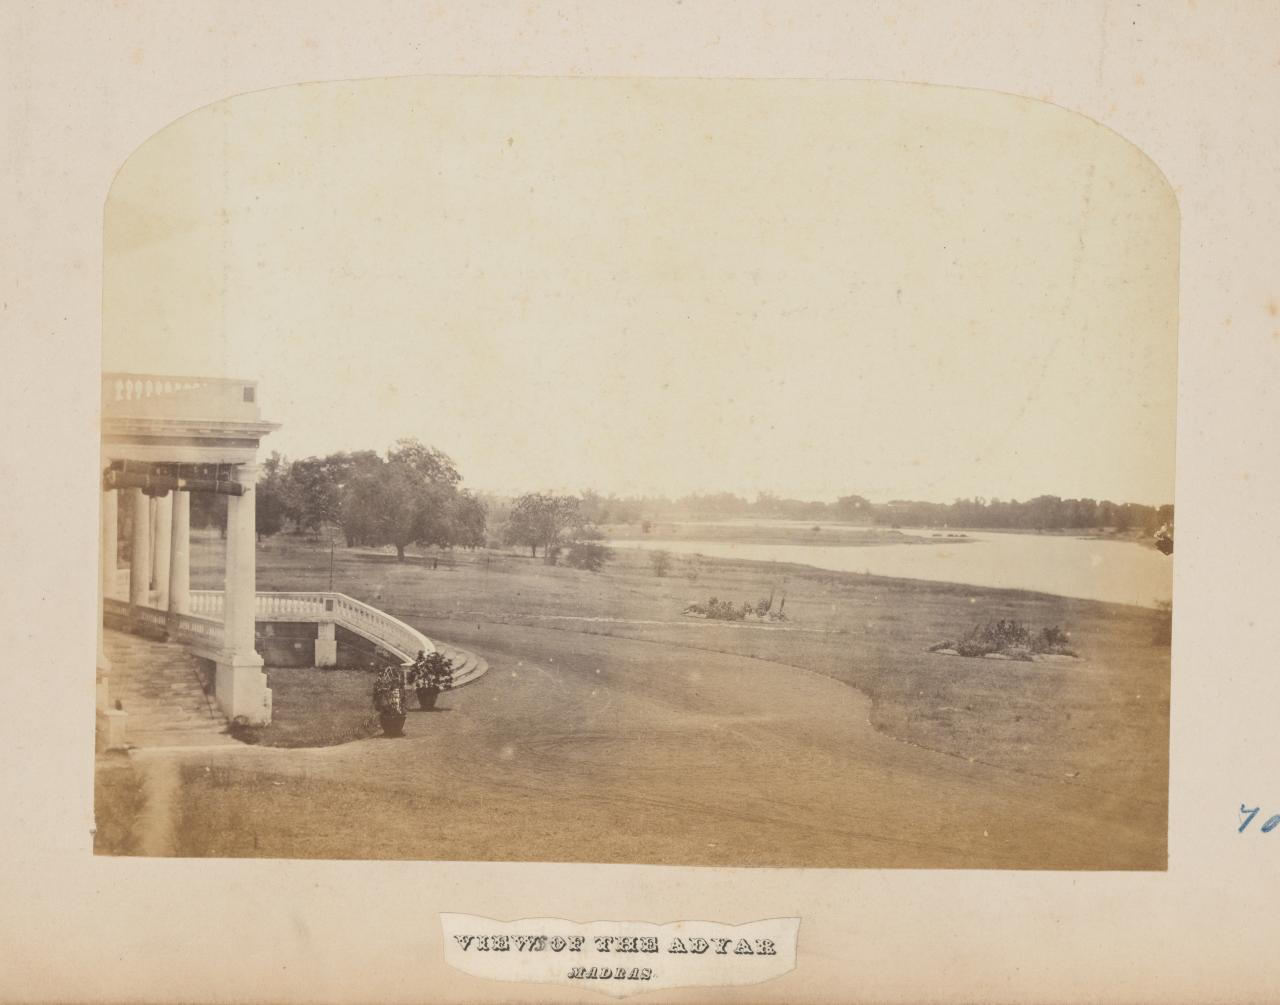 View of the Adyar, Madras